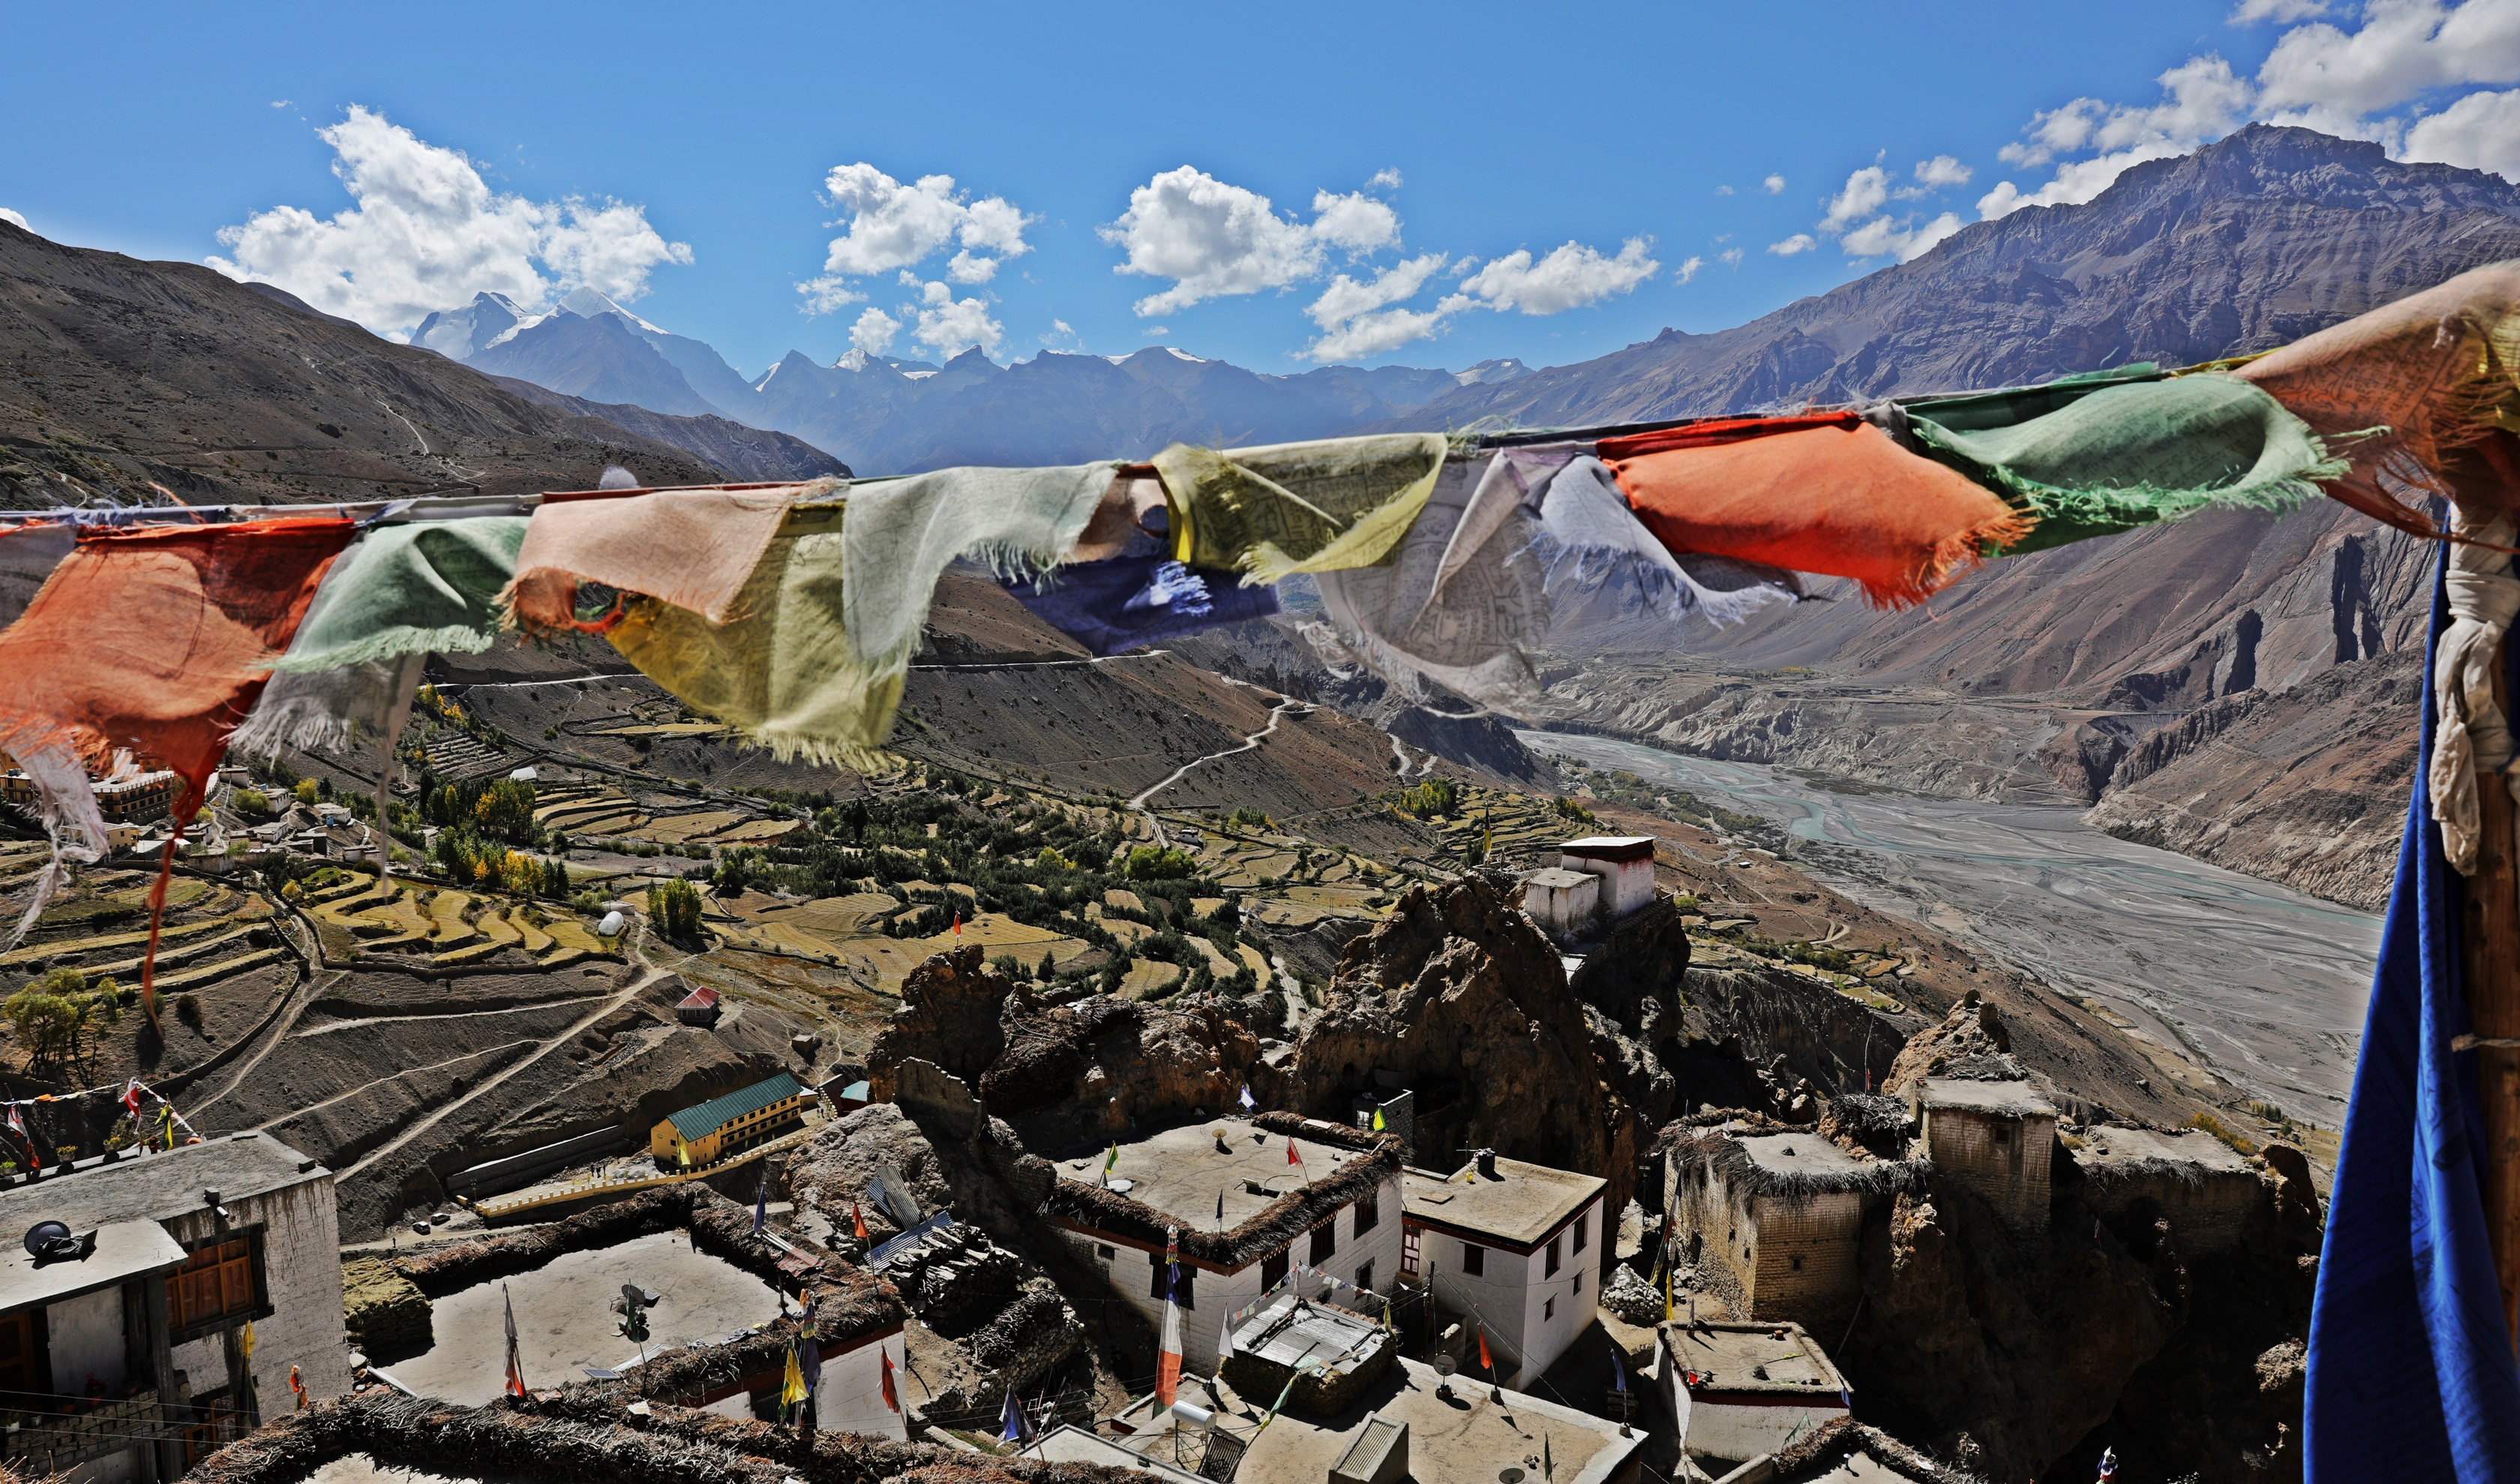 View of Dhankar Village from the Gompa